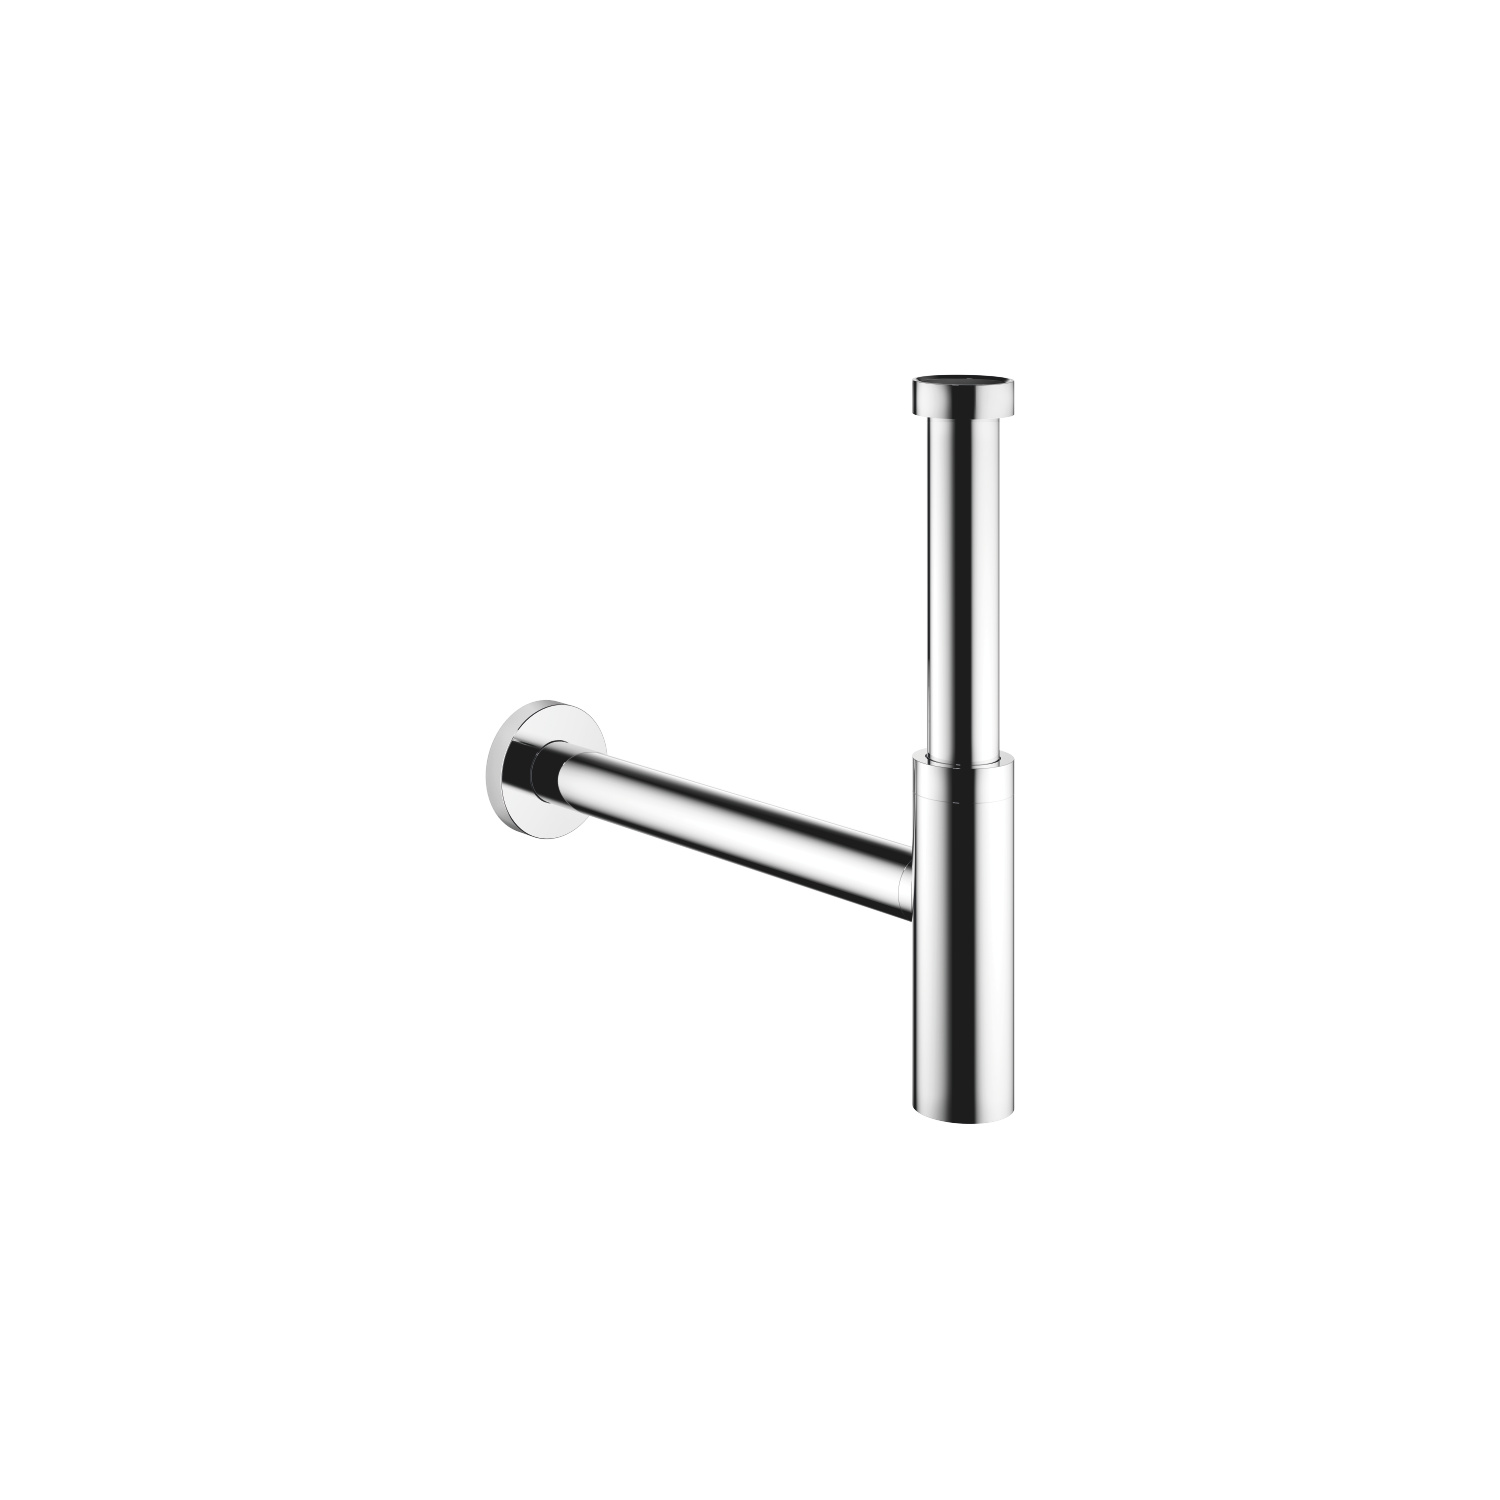 Siphon for basin - polished chrome